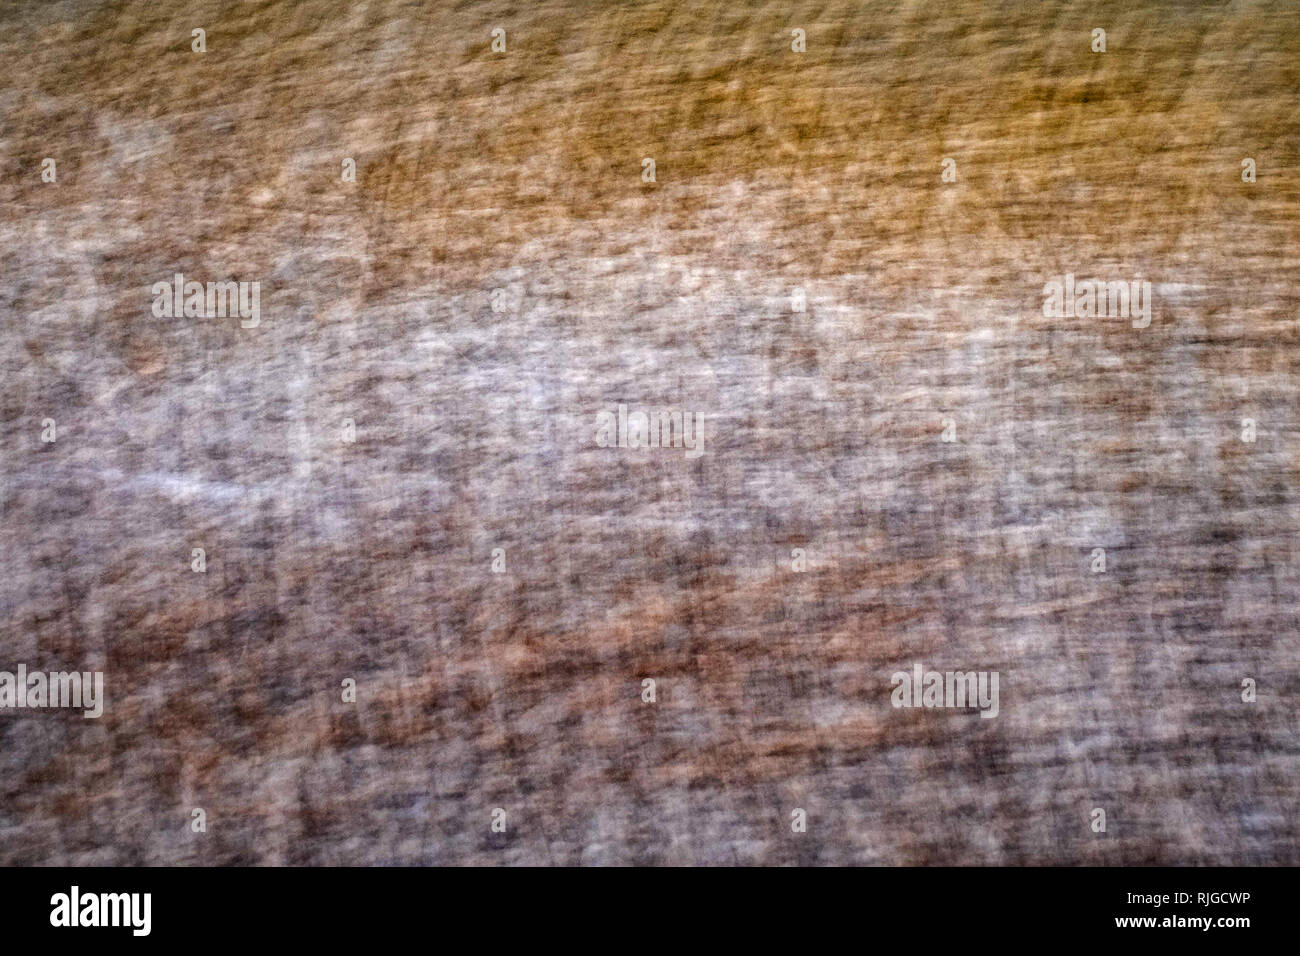 texture hatched ocher white brown - Stock Image